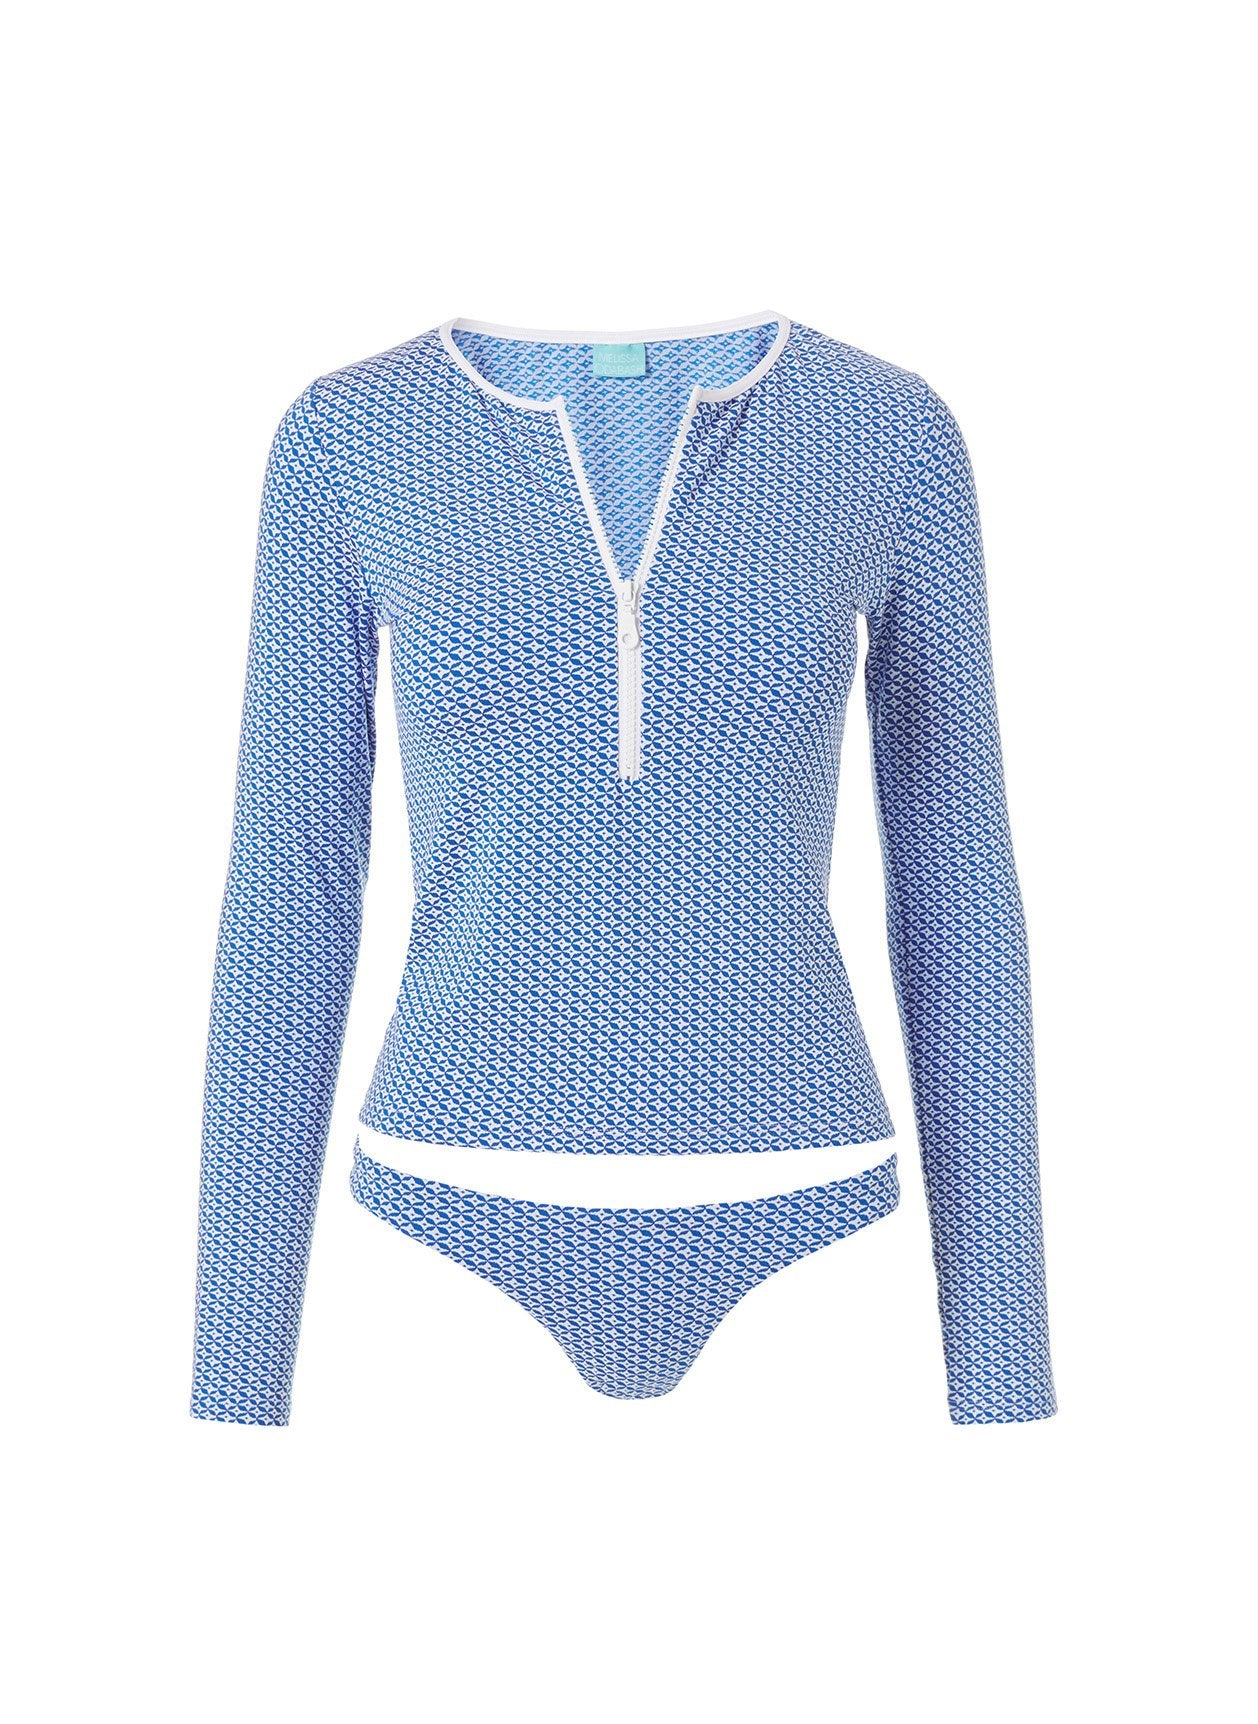 Cali Mosaic Blue Long Sleeve Rash Vest Bikini 2020